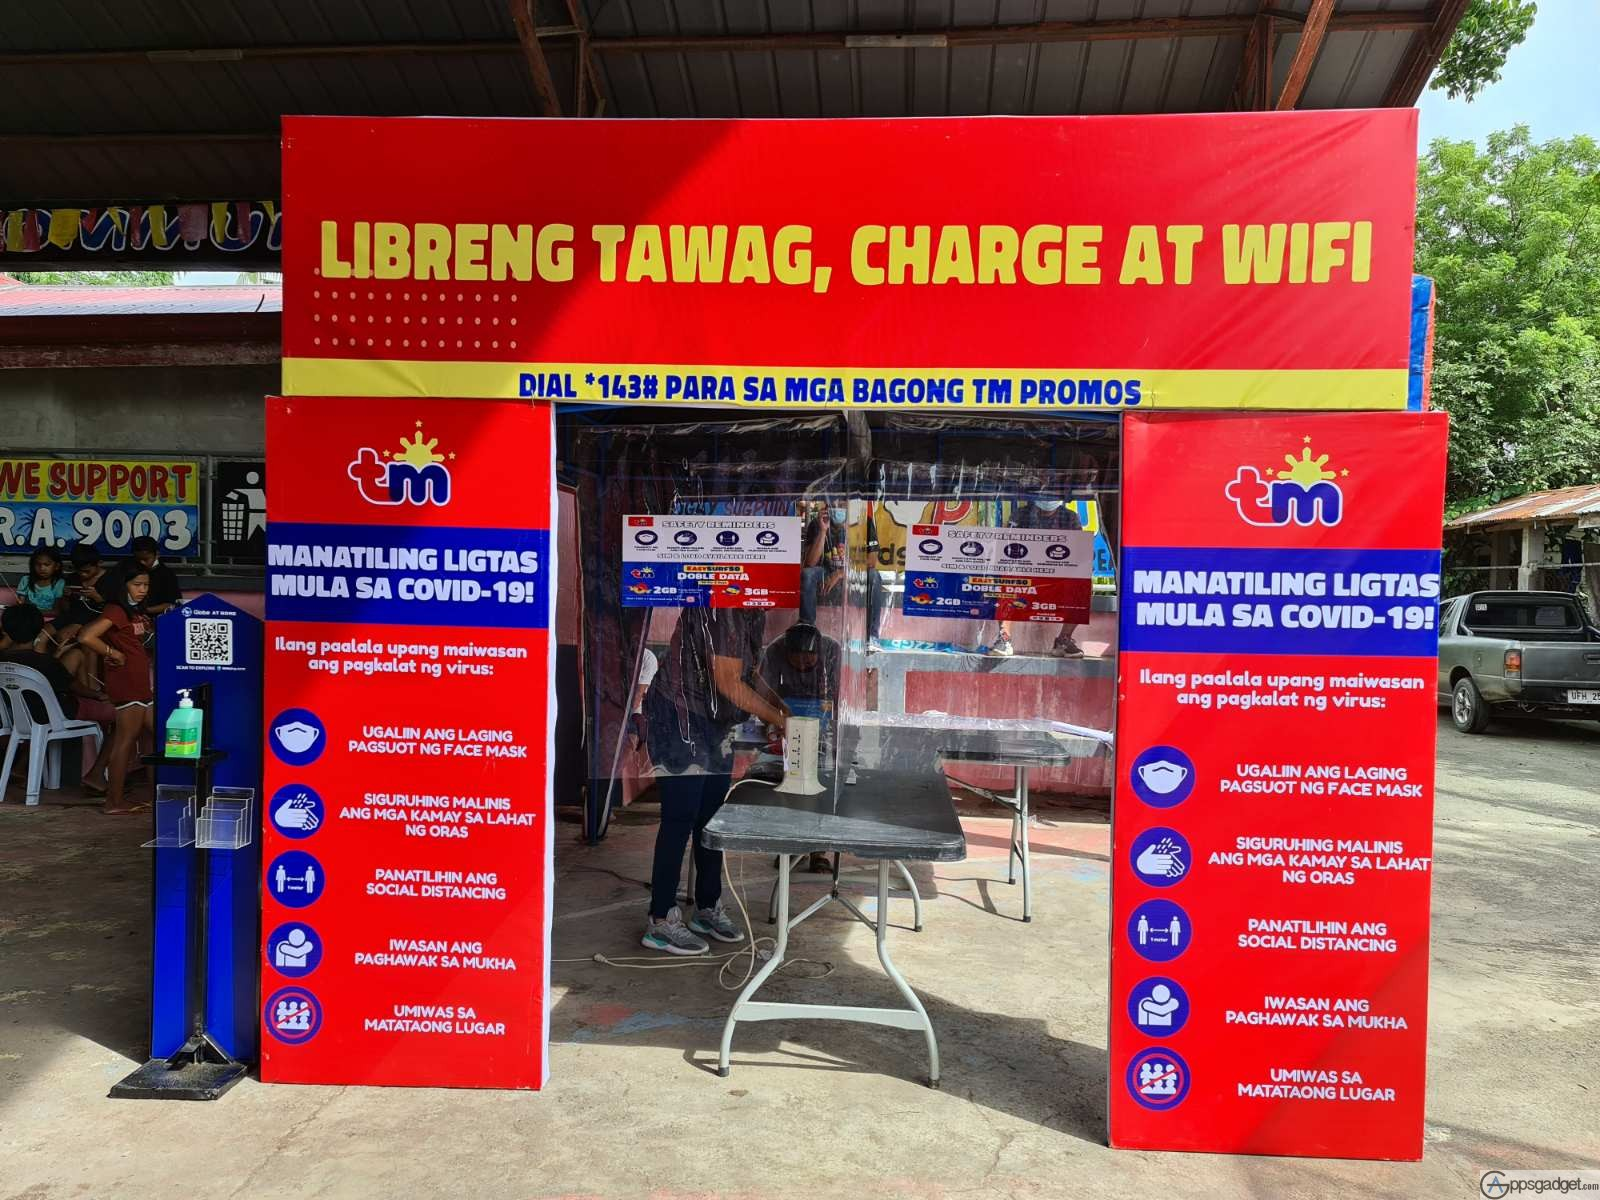 Globe Free Calls Libreng Tawag, Libreng Wifi sites, Distributes Relief goods for Typhoon Ulysses Victims